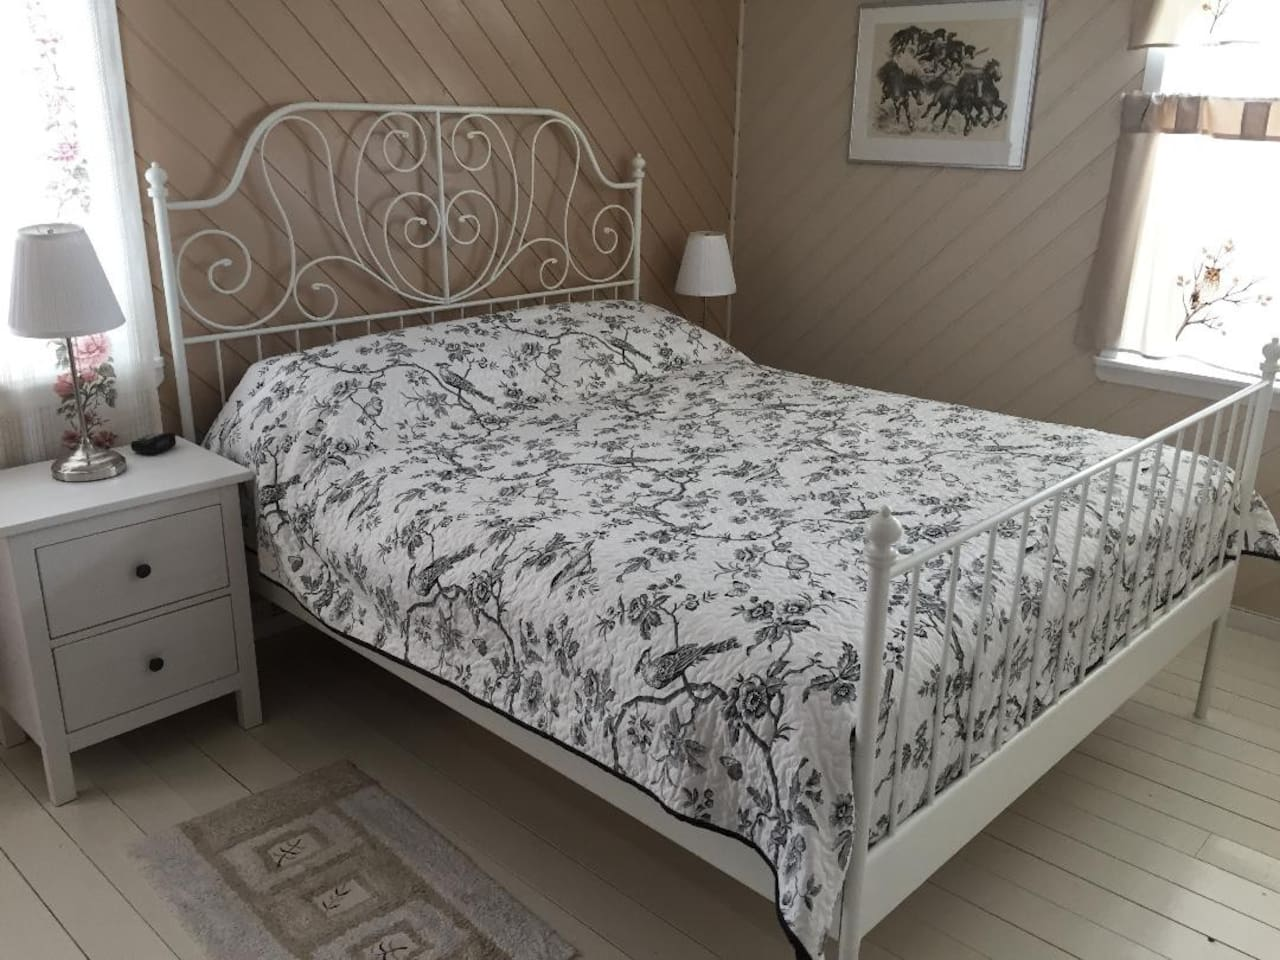 Sleep well in a very comfortable Queen size bed